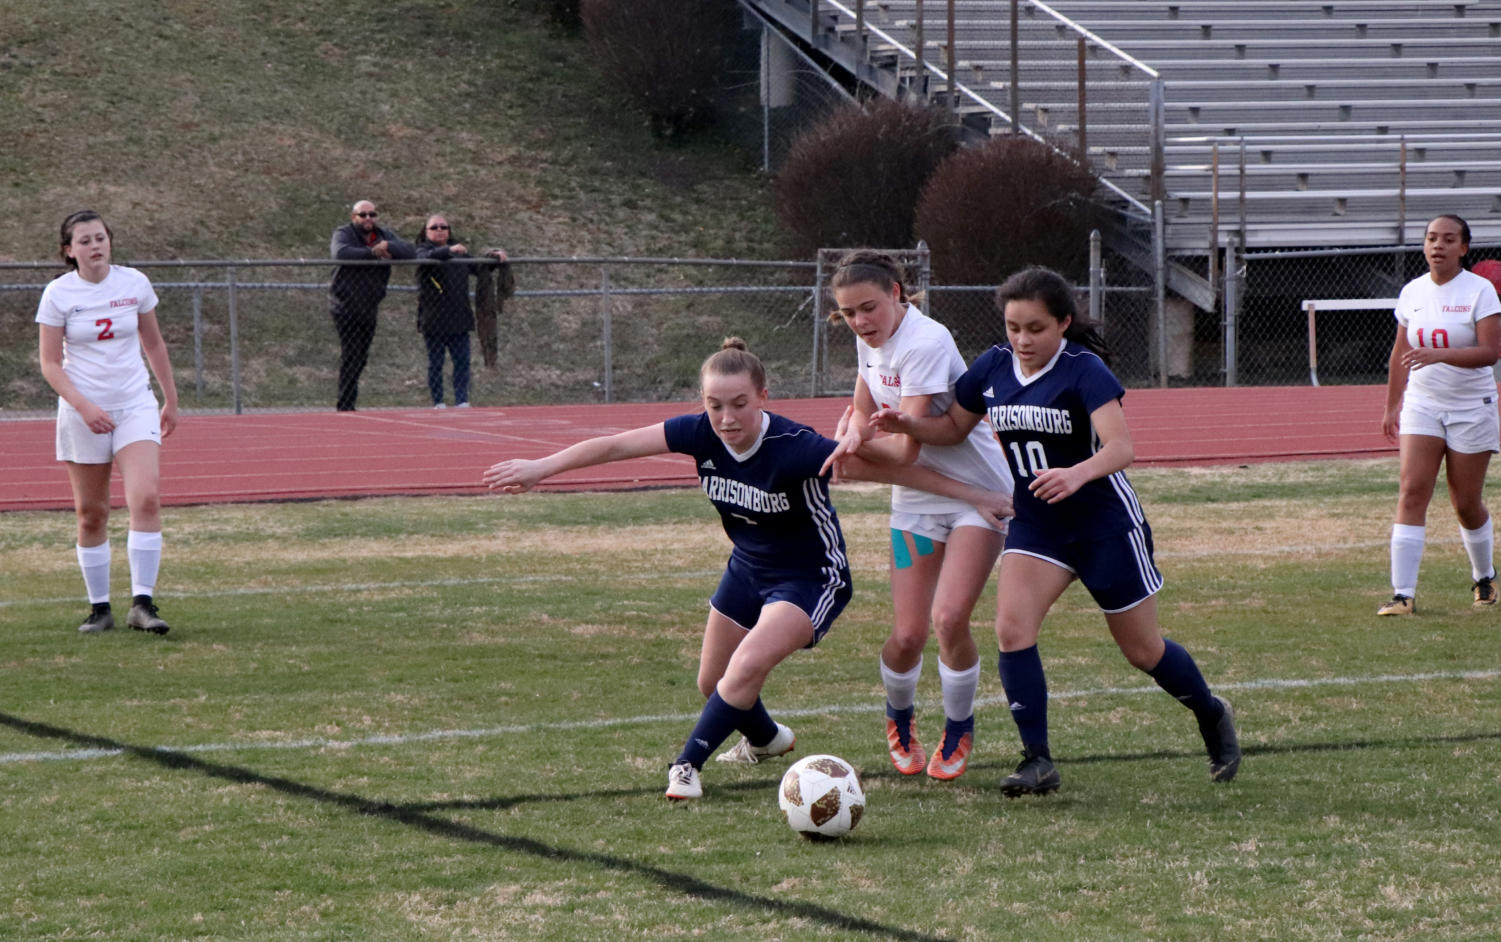 Eighth+graders+Lily+Fleming+%28left%29+and+Gali+Santiago+defend+against+a+Fauquier+midfielder.+